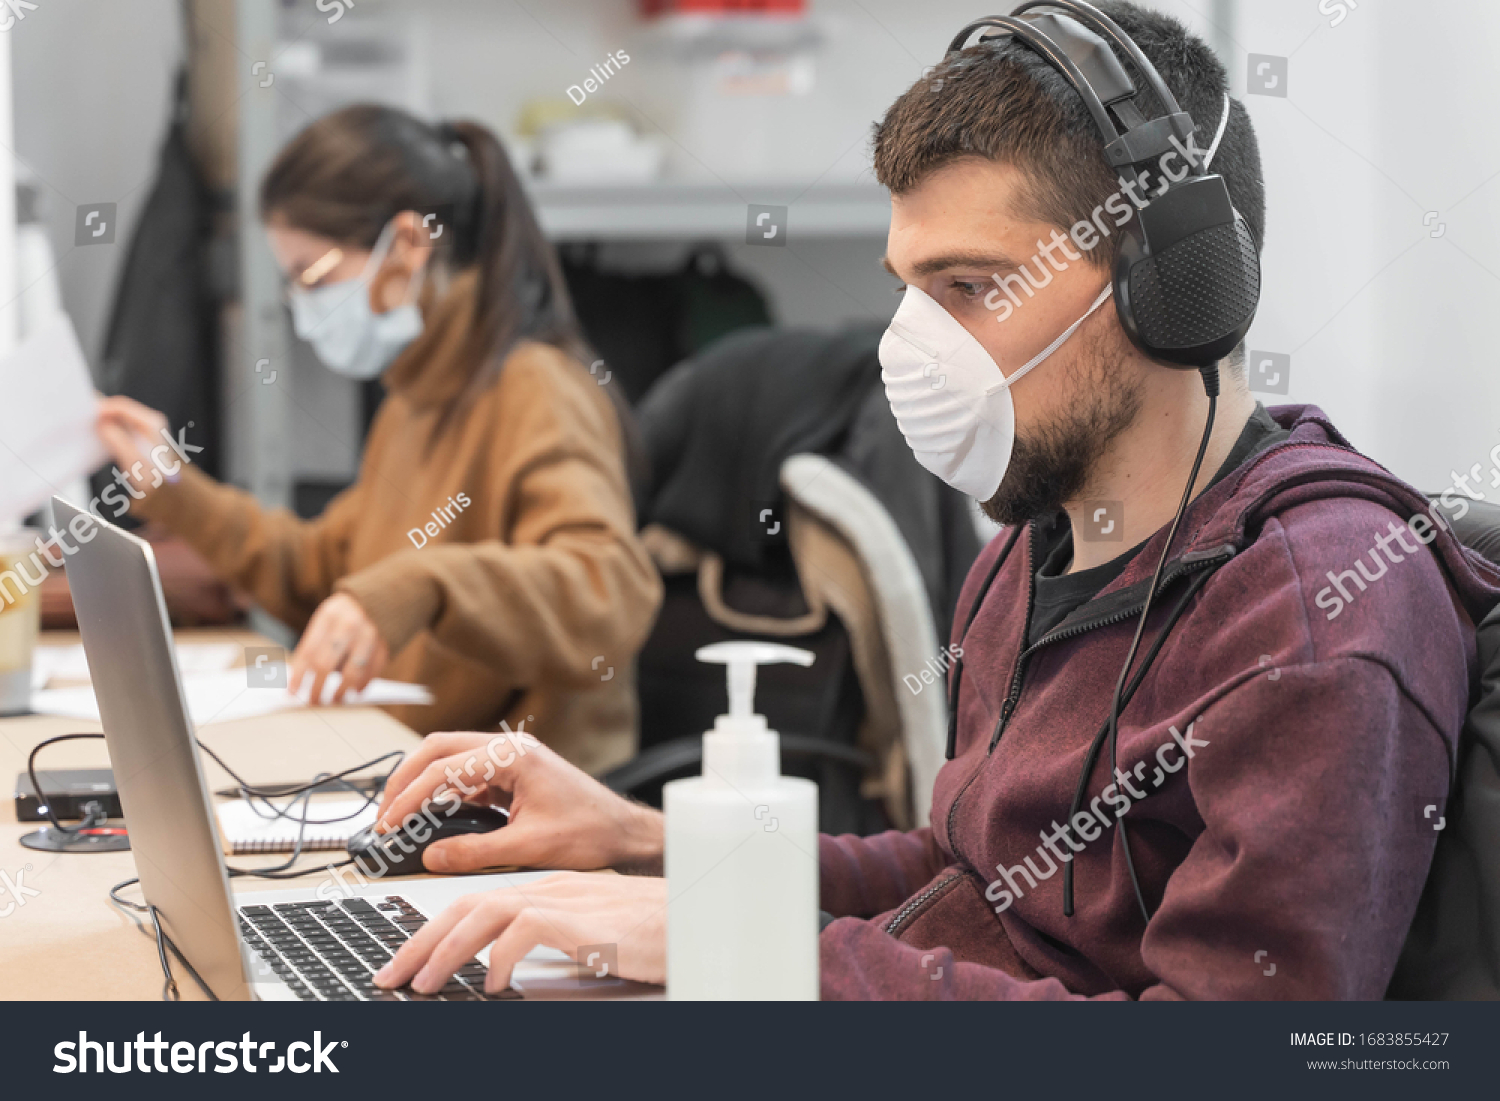 Coronavirus. Business workers working from home wearing protective mask. Small company in quarantine for coronavirus working from home with sanitizer gel. Small company concept. #1683855427